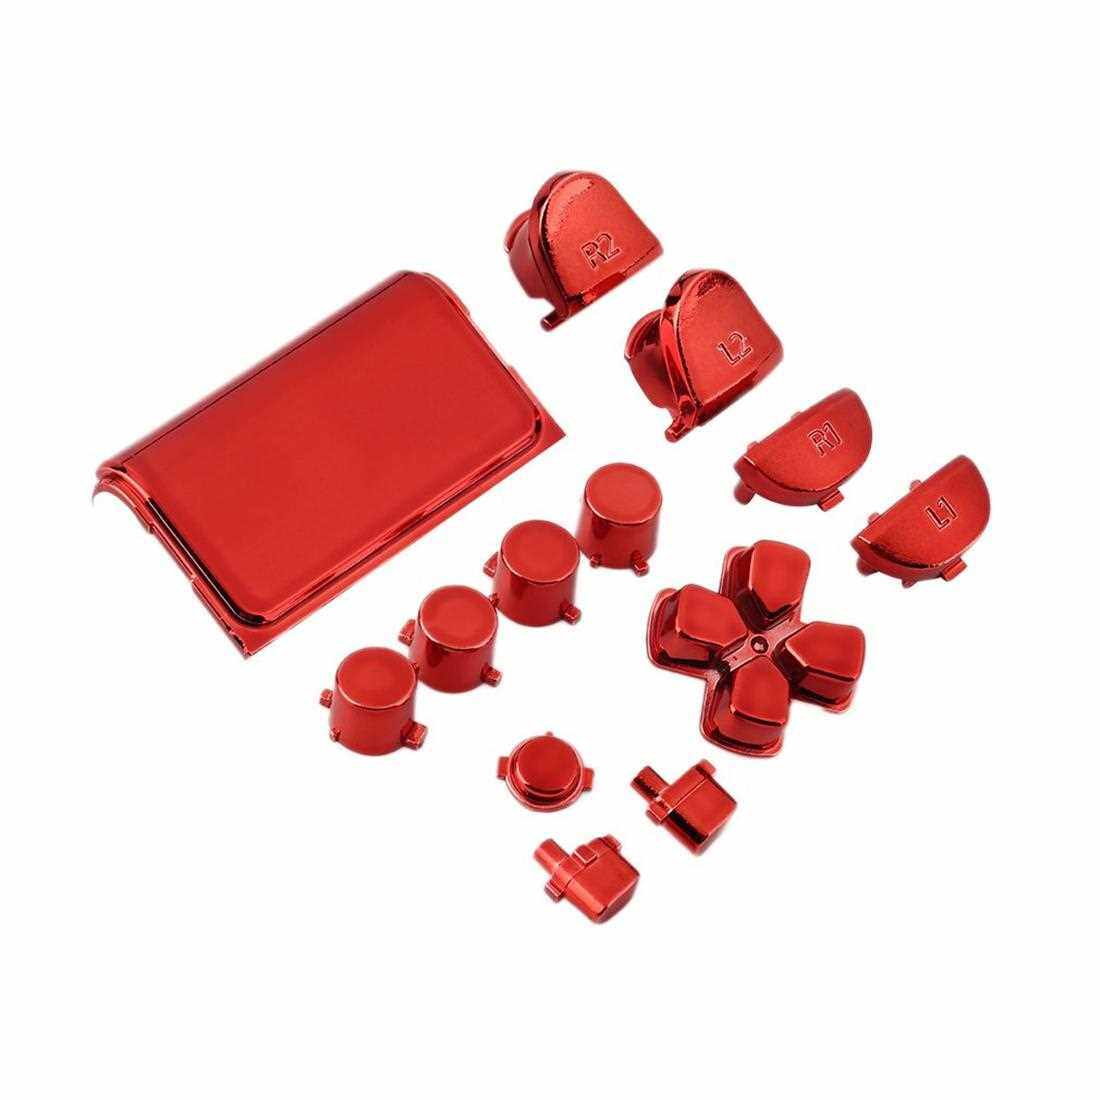 Chrome Button Replacement Mod Game Kit for Playstation 4 PS4 Controller (Red)